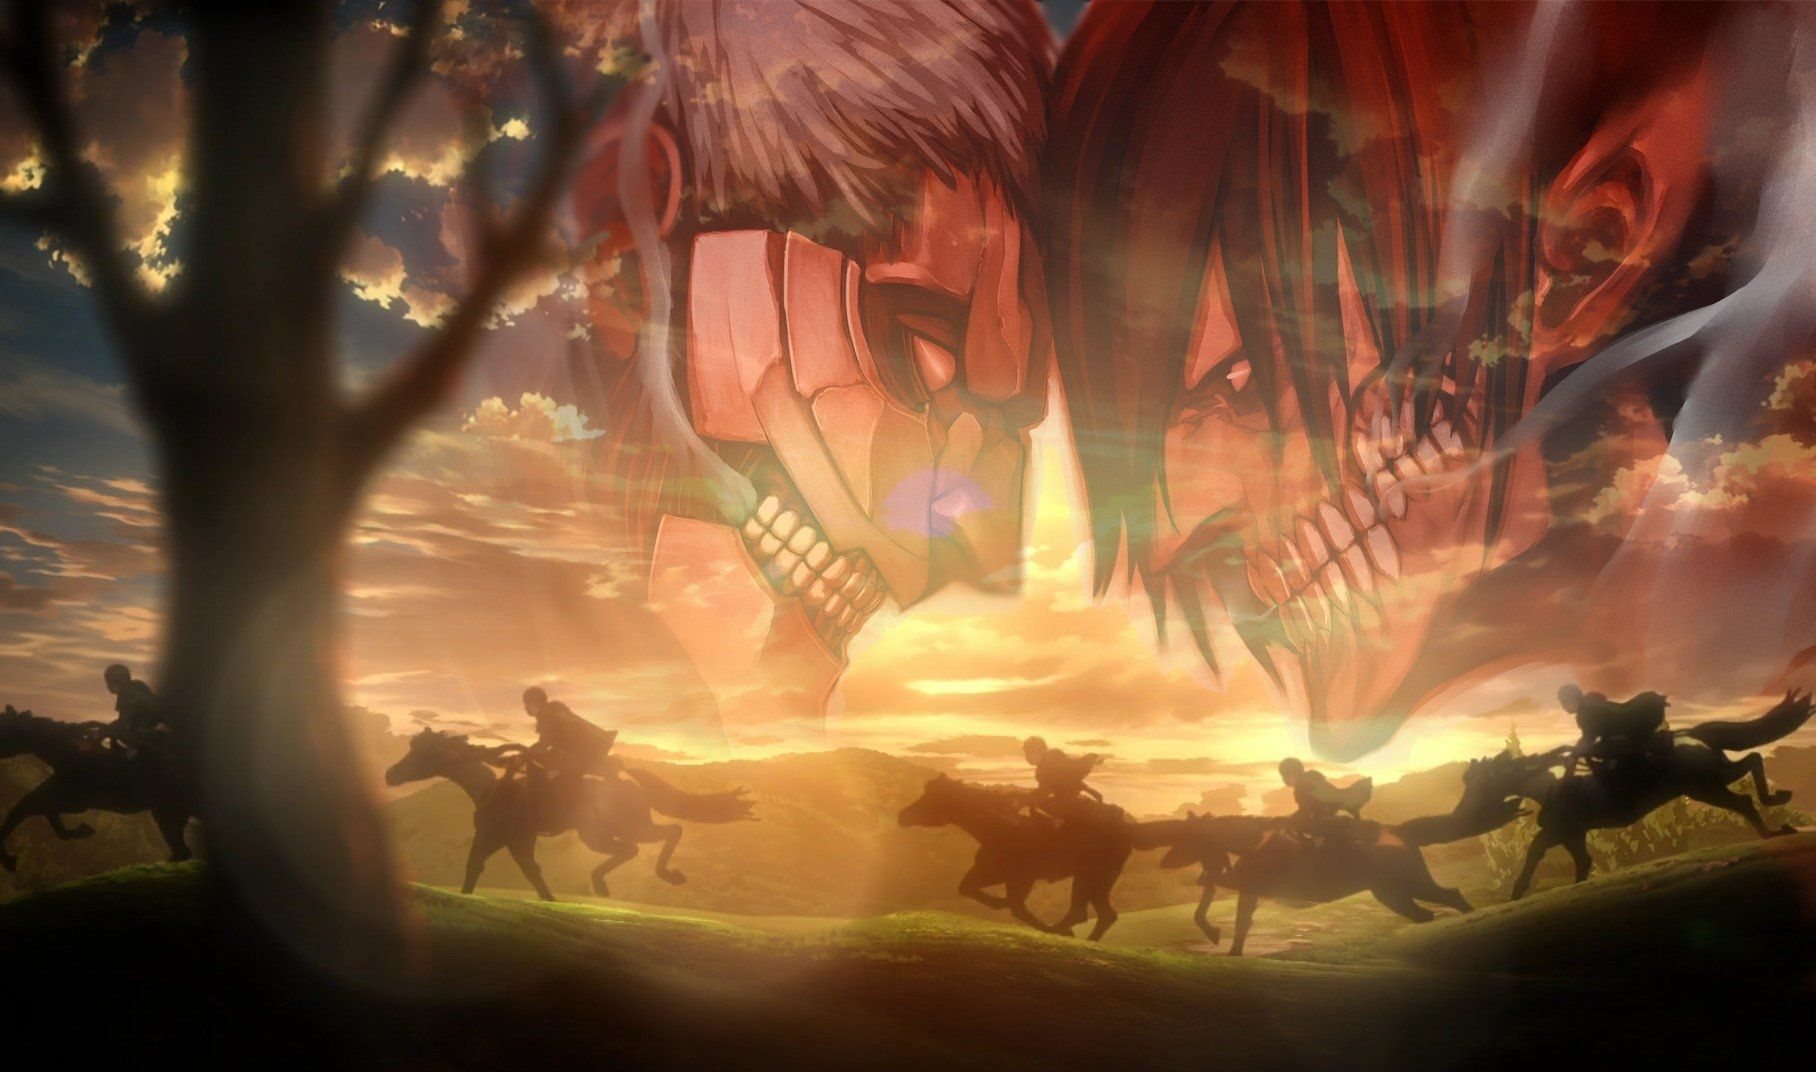 5760 X 1080 Wallpaper Attack On Titan 1816x1072 Wallpaper Teahub Io